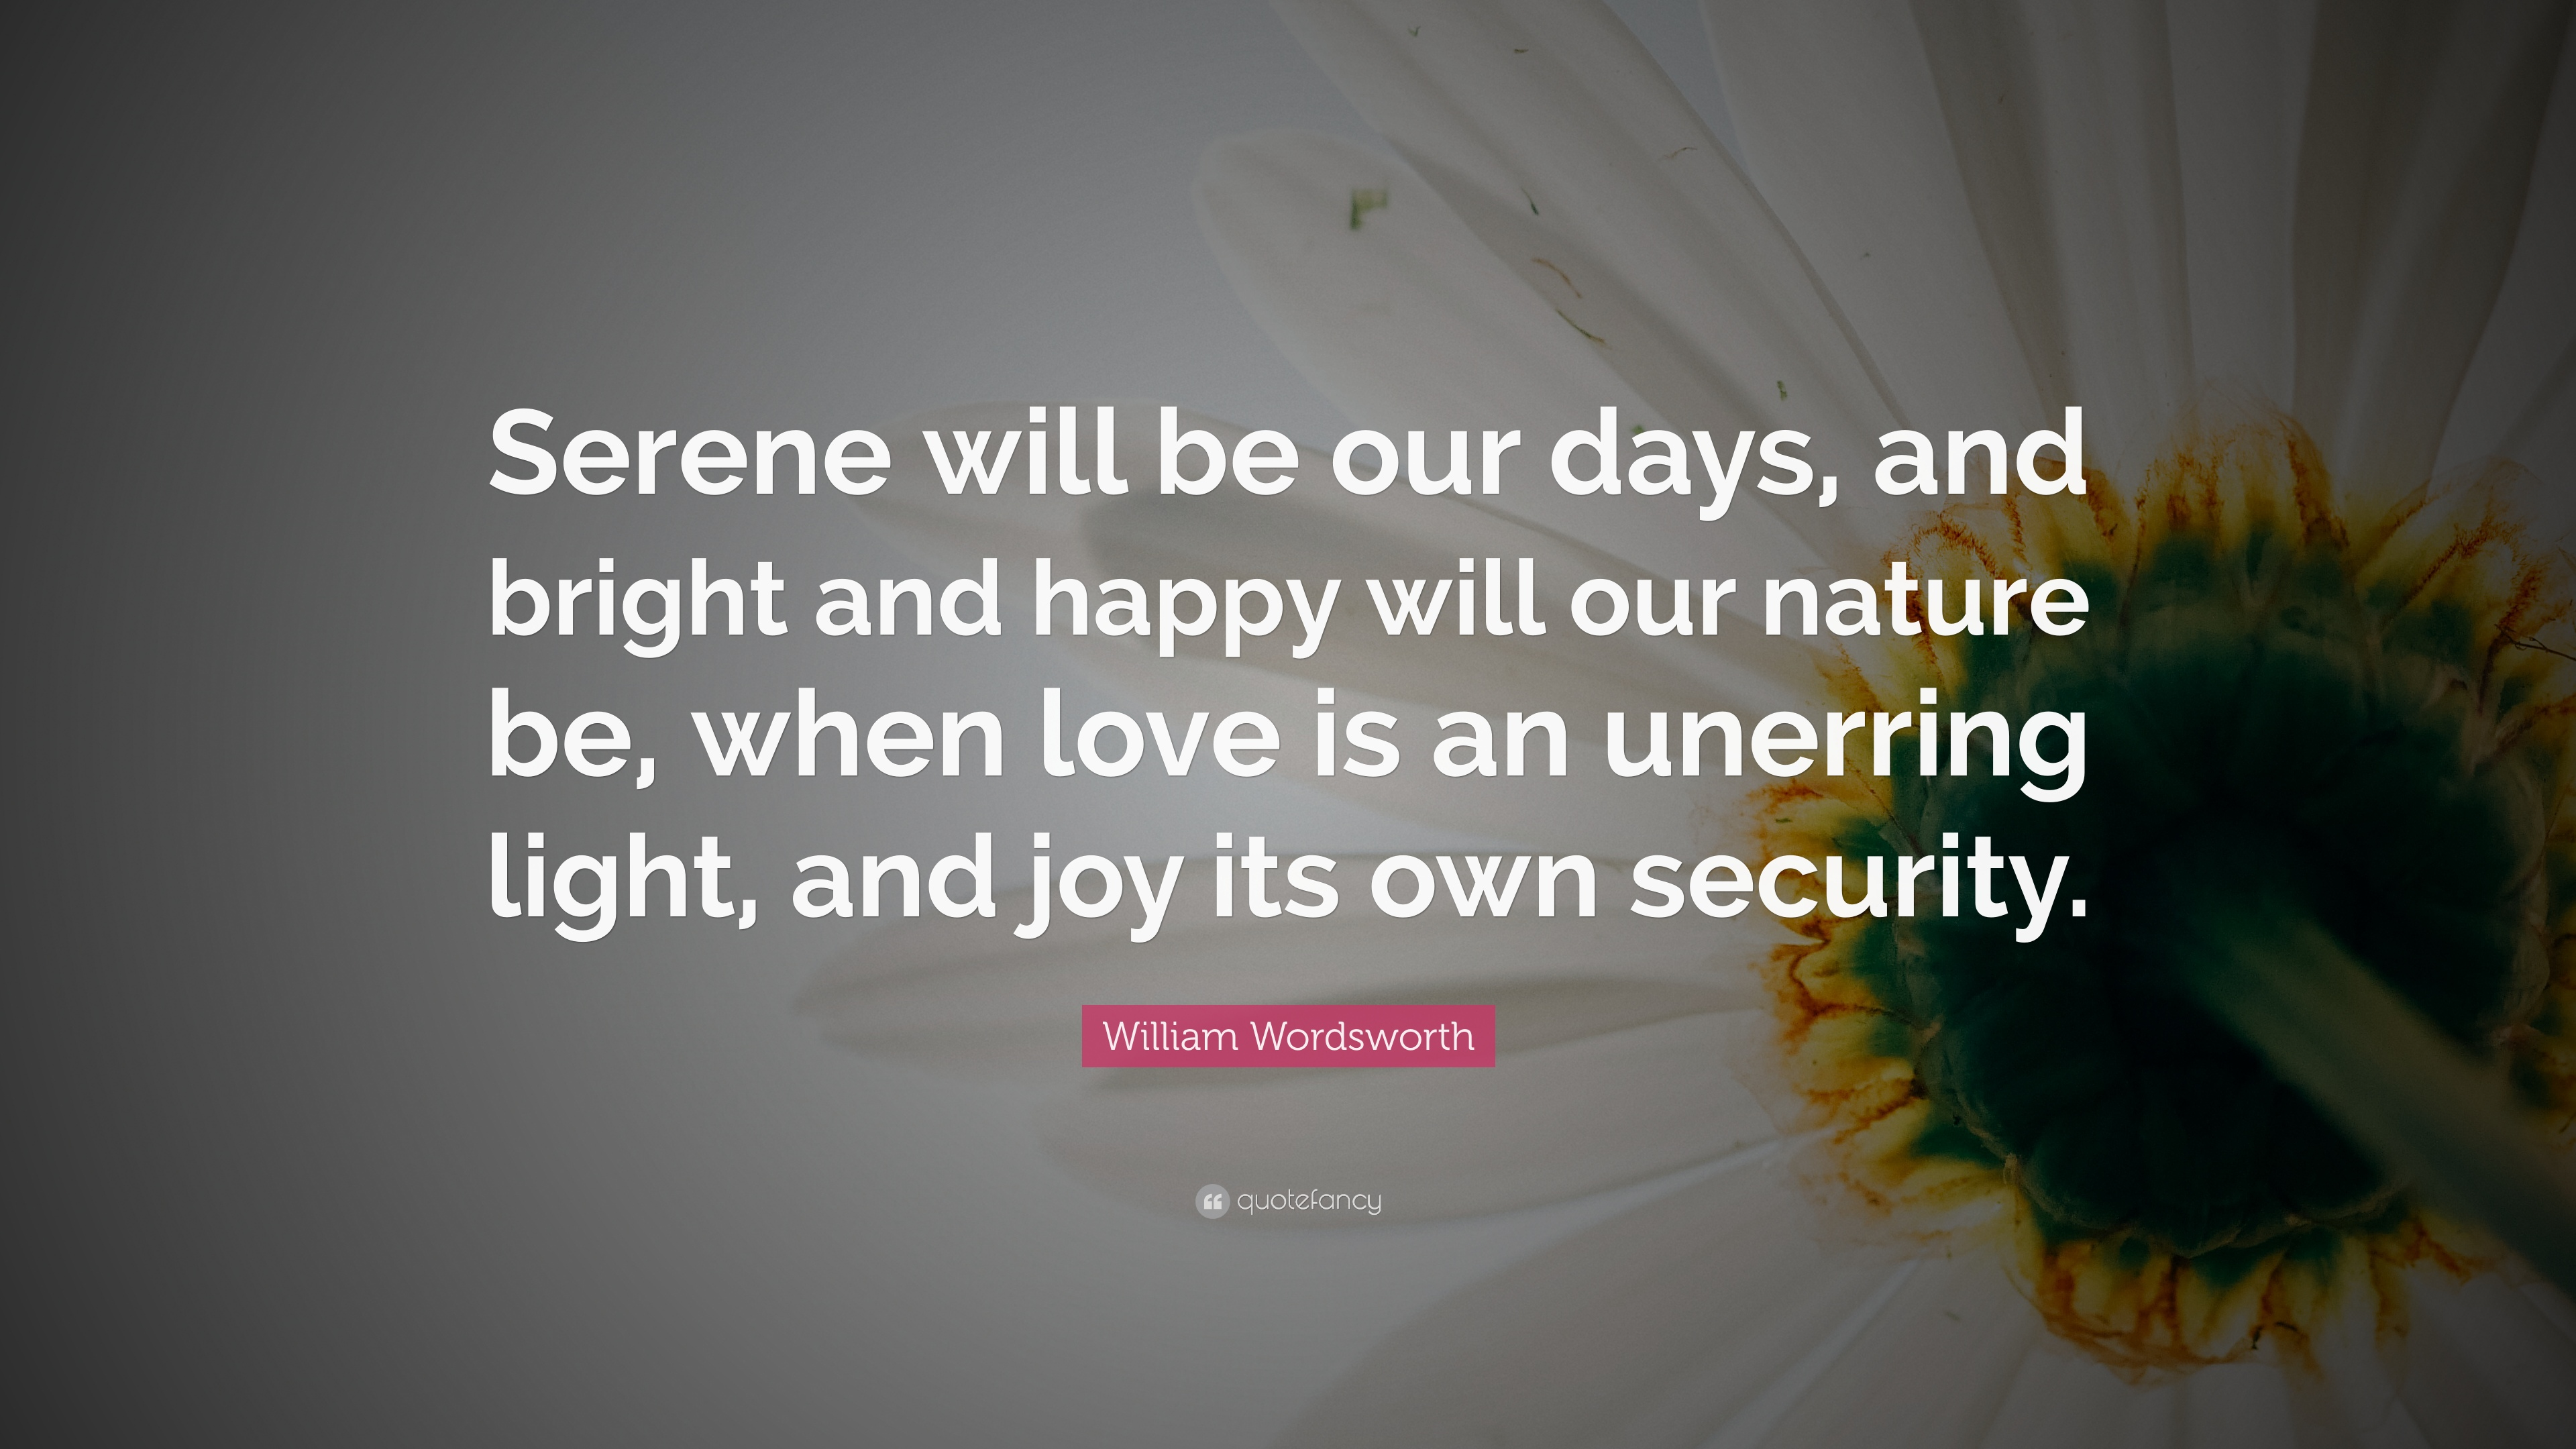 Where is love found in our days